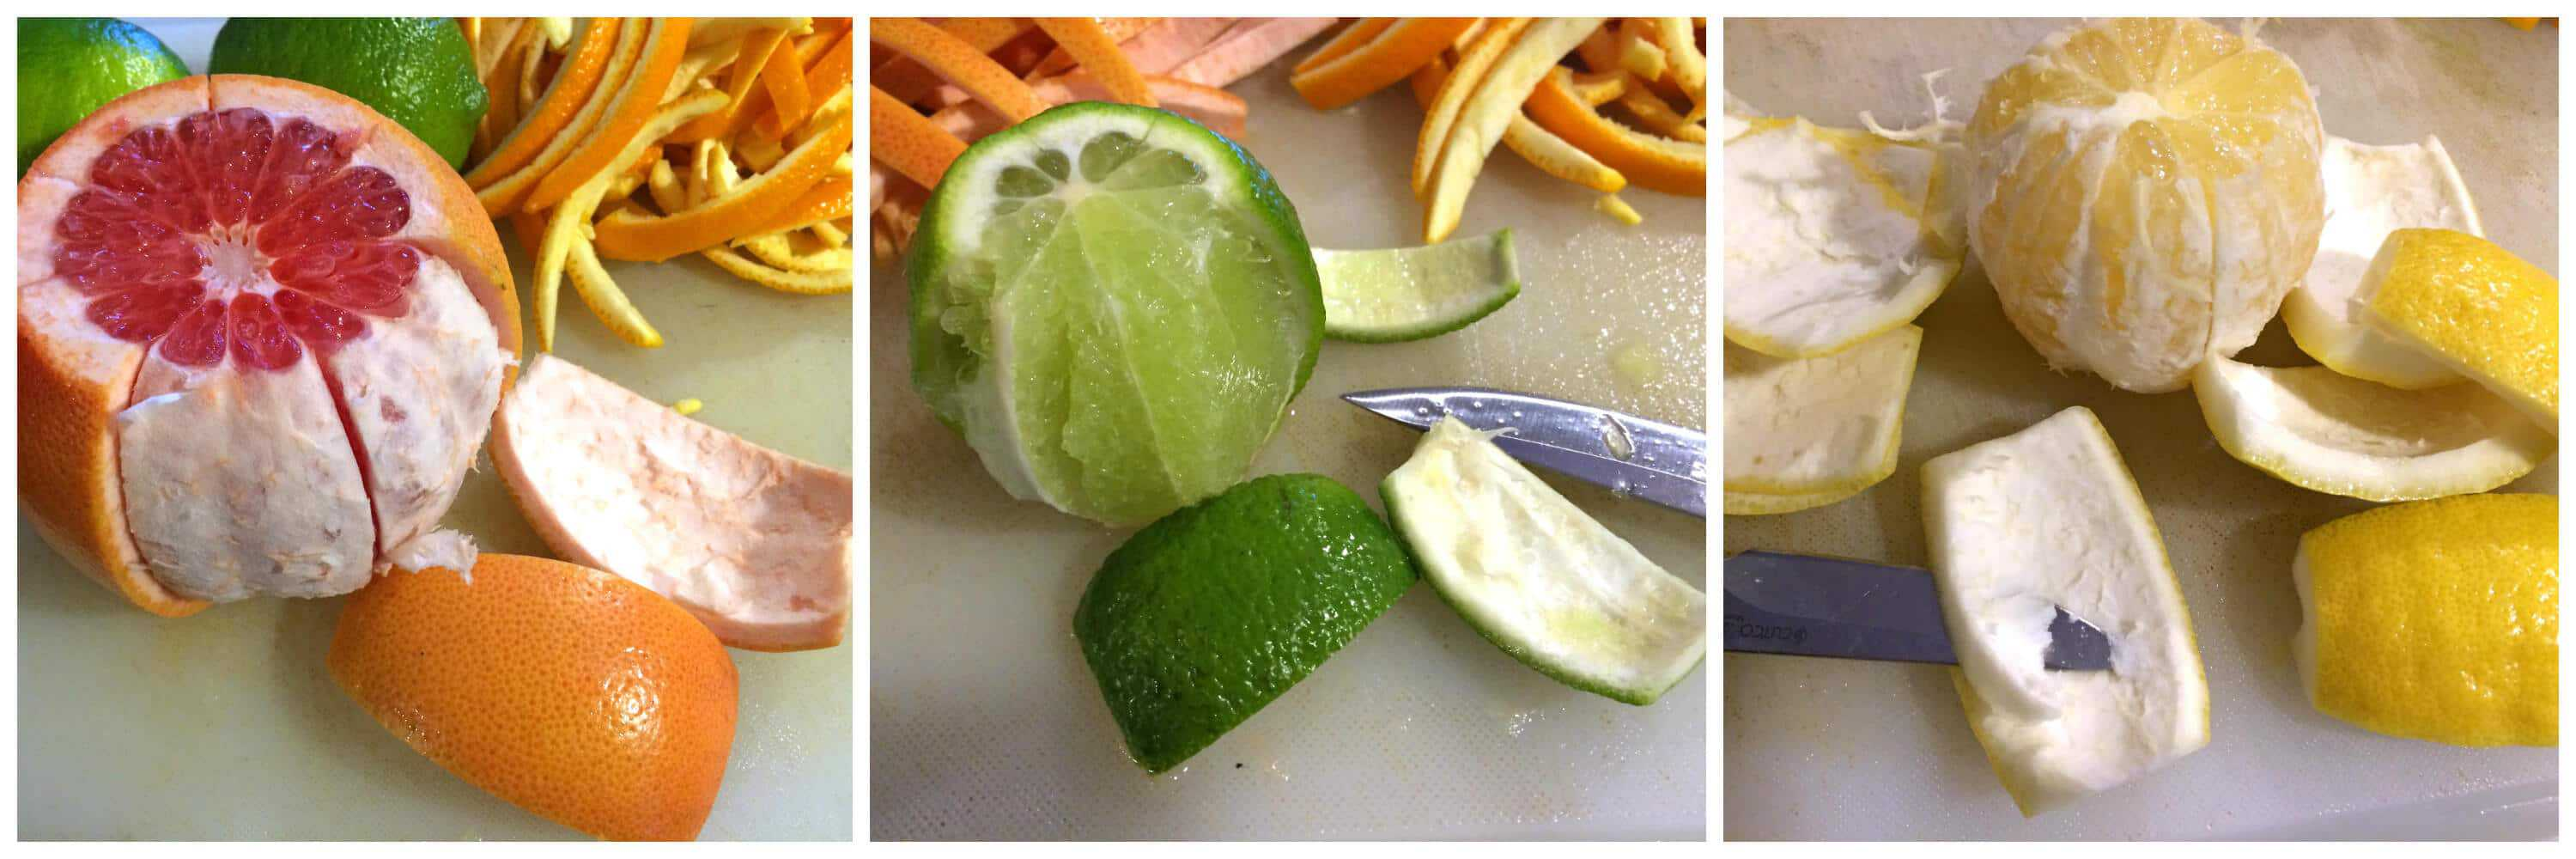 homemade candied orange peel lemon grapefruit lime citrus citron recipe how to make